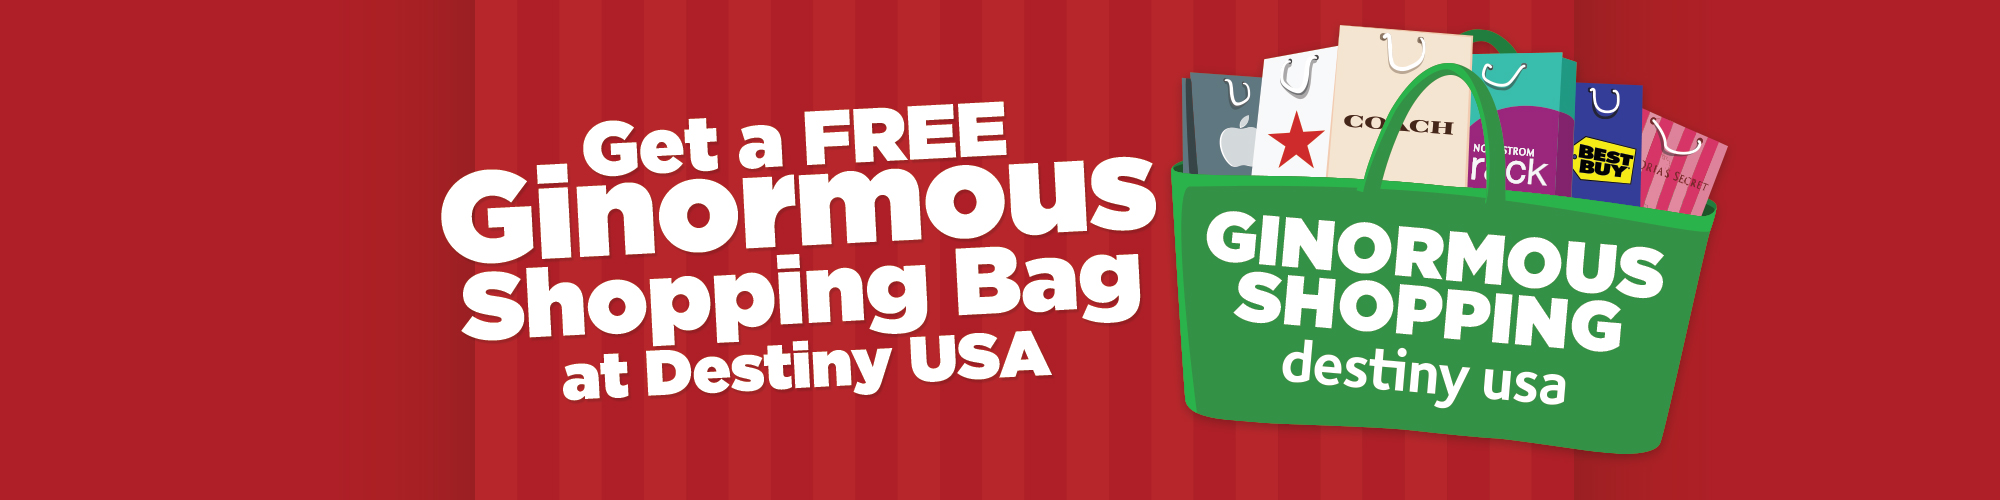 Ginormous Shopping Bag Giveaway